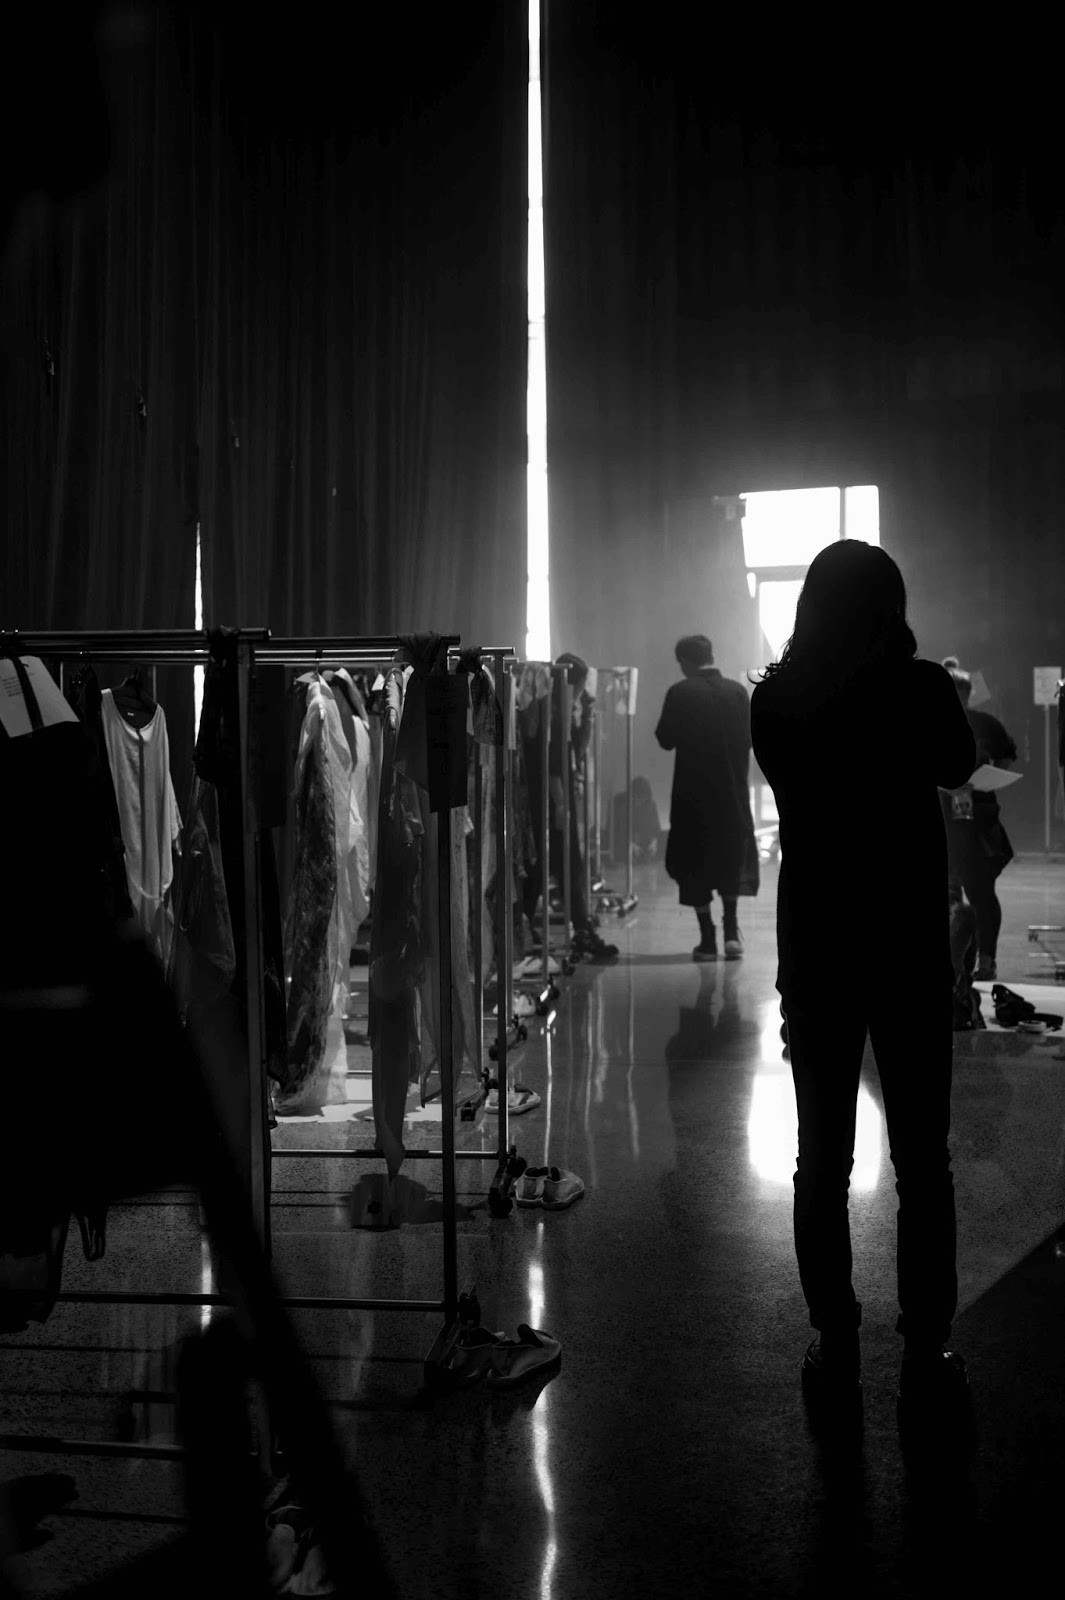 blacklog nz fashion weekend aok show photo essay by ishna jacobs images in a behind the scenes photo essay for blacklog as far as a behind the scenes portrait of a fashion show goes we think this is more than a o k